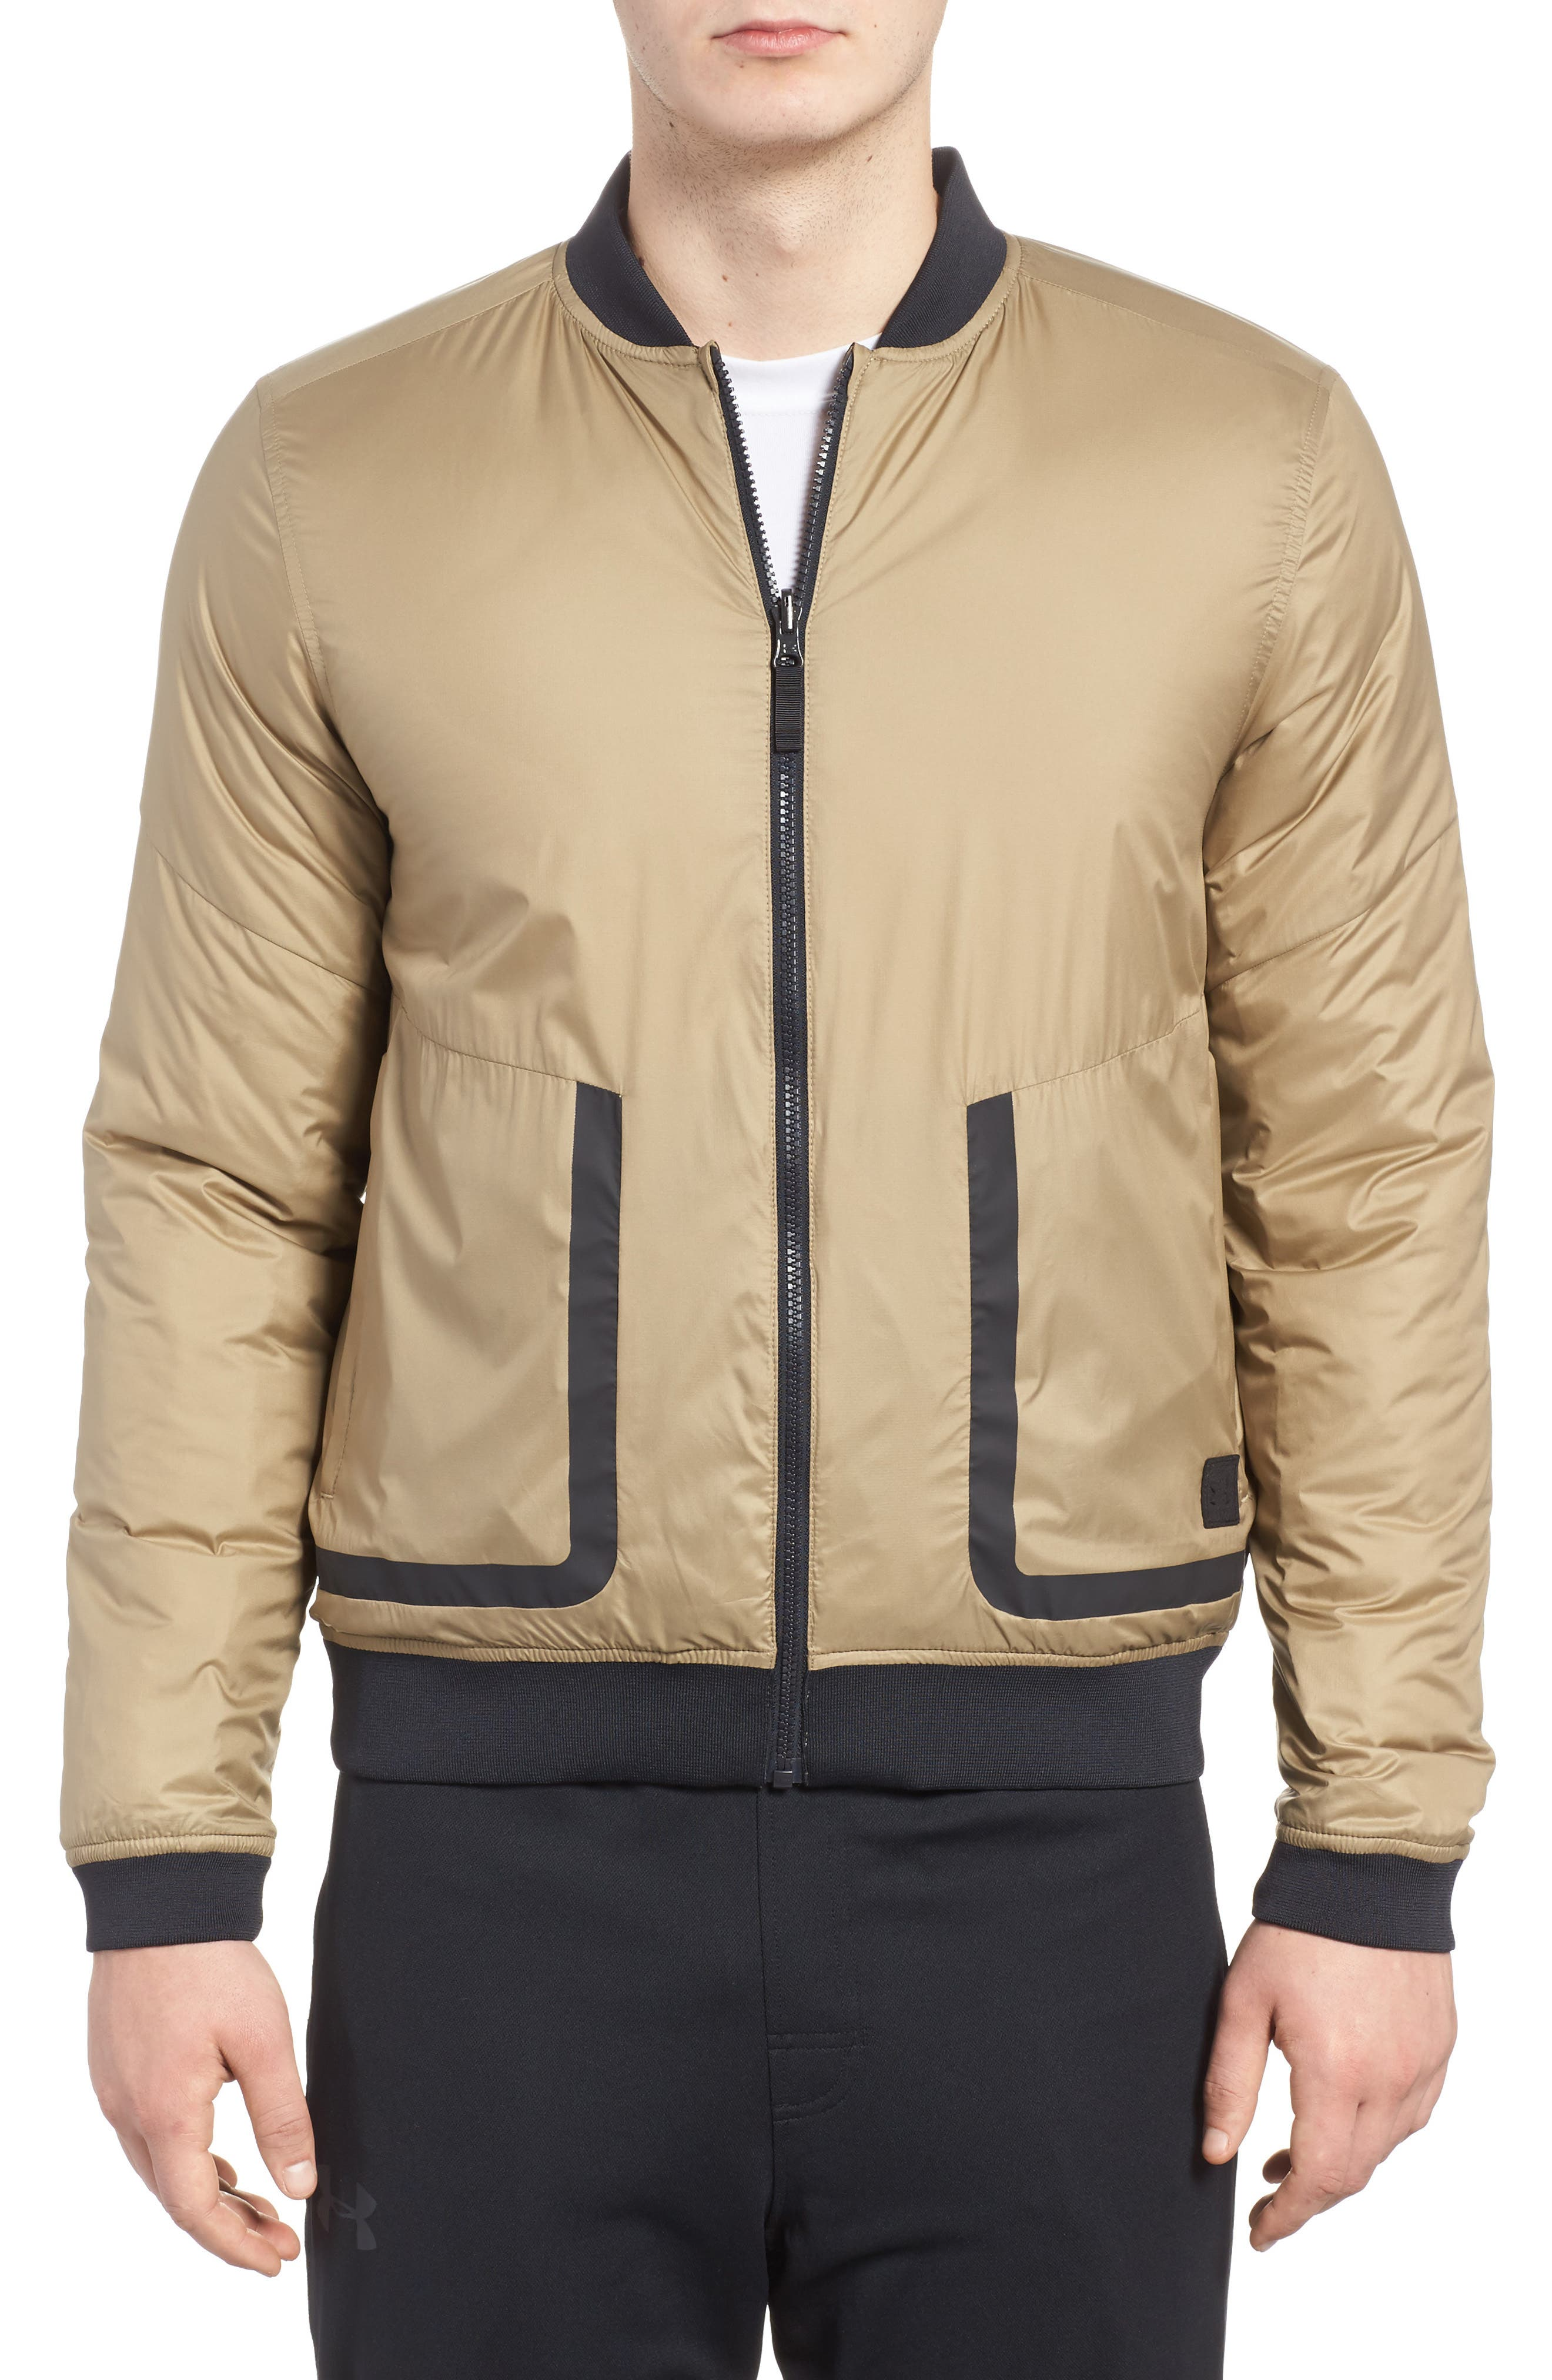 Sportstyle Reactor Reversible Bomber Jacket,                             Main thumbnail 1, color,                             Canvas / Bay Brown / Black